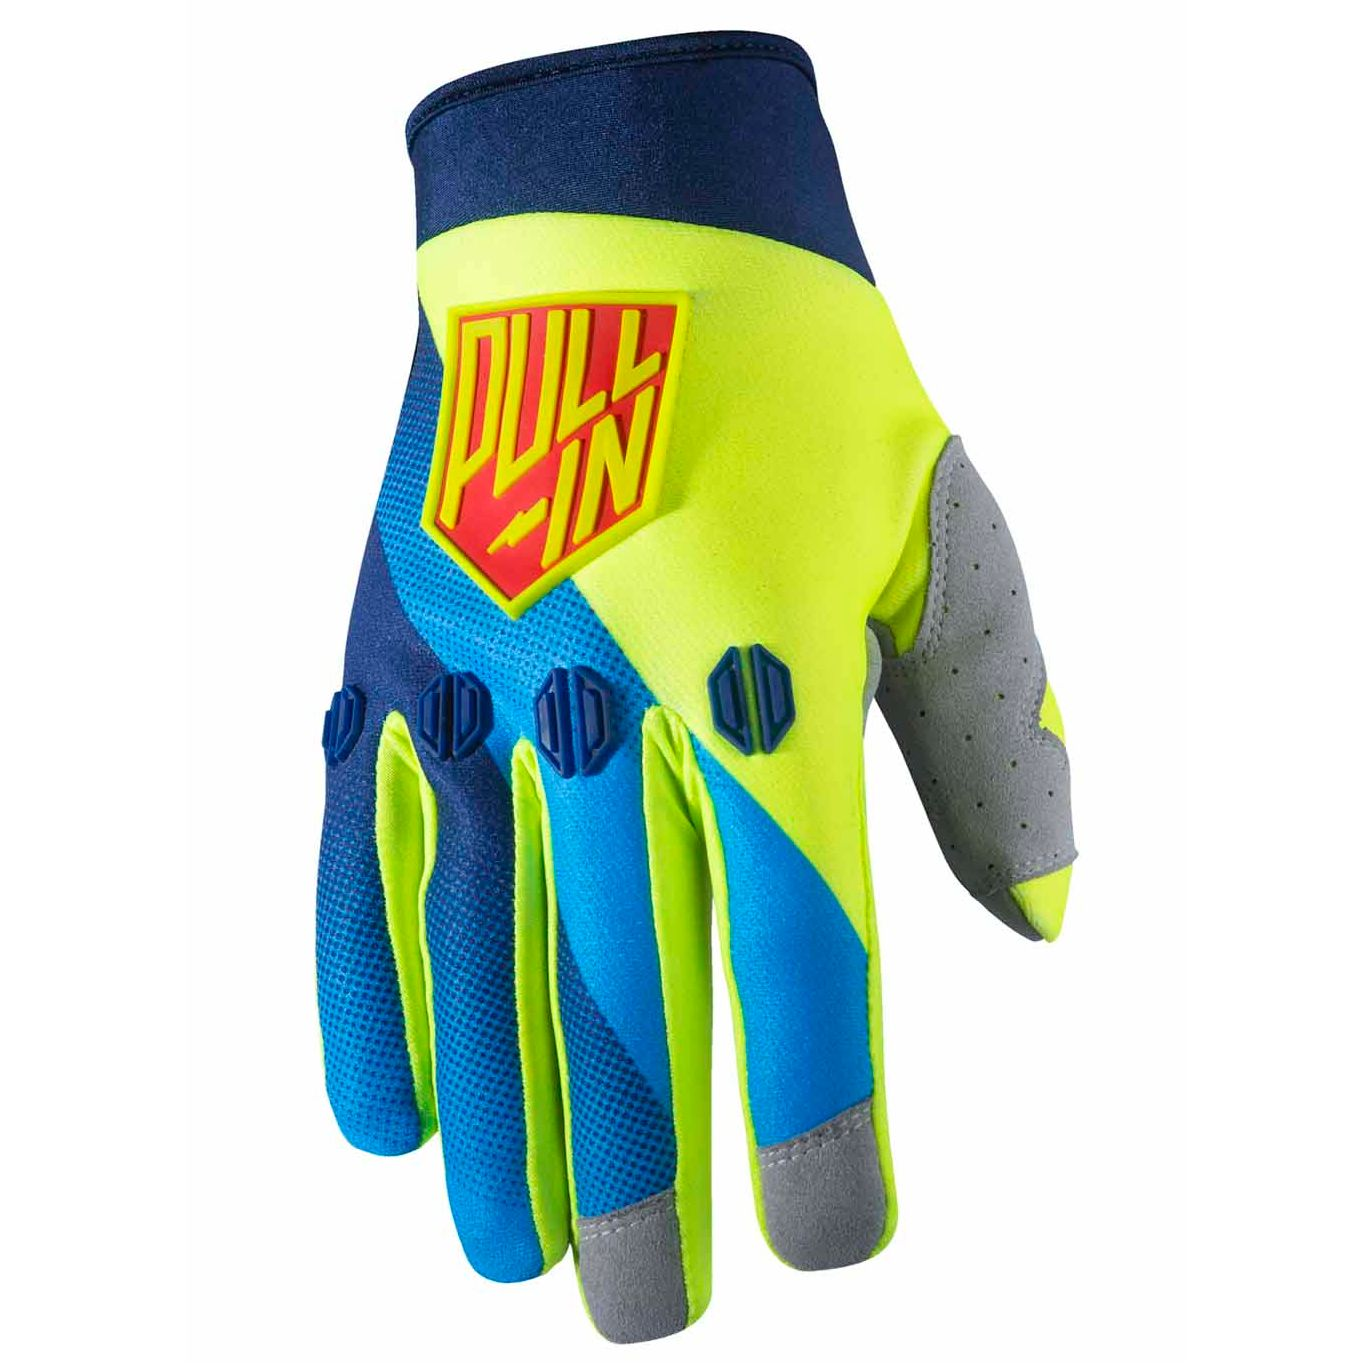 Gants Cross Pull-in Race - Bleu / Jaune -